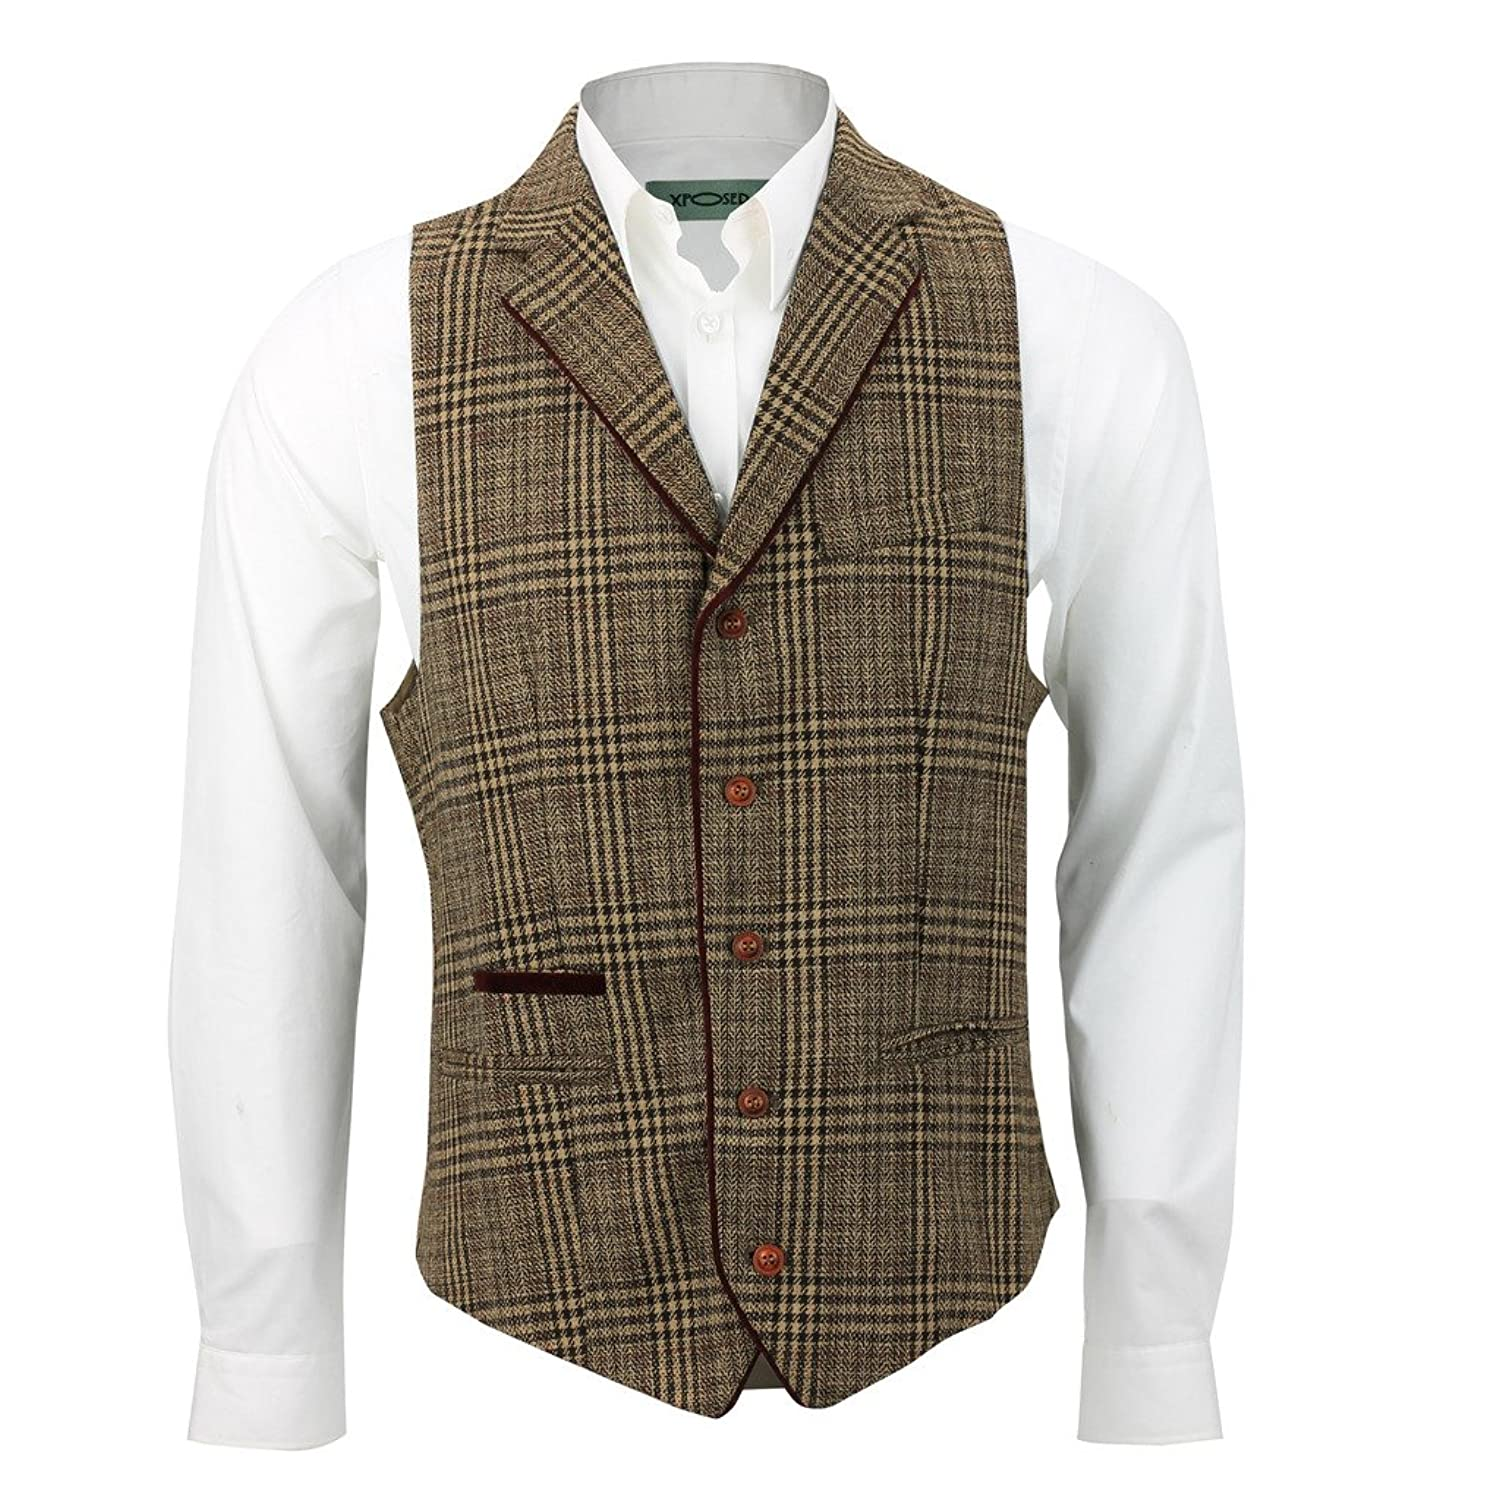 Men's Vintage Inspired Vests Mens Brown Tweed Check Slim Formal Vintage Waistcoat Red Velvet Collar Front Trim Smart Casual Vest £27.99 AT vintagedancer.com